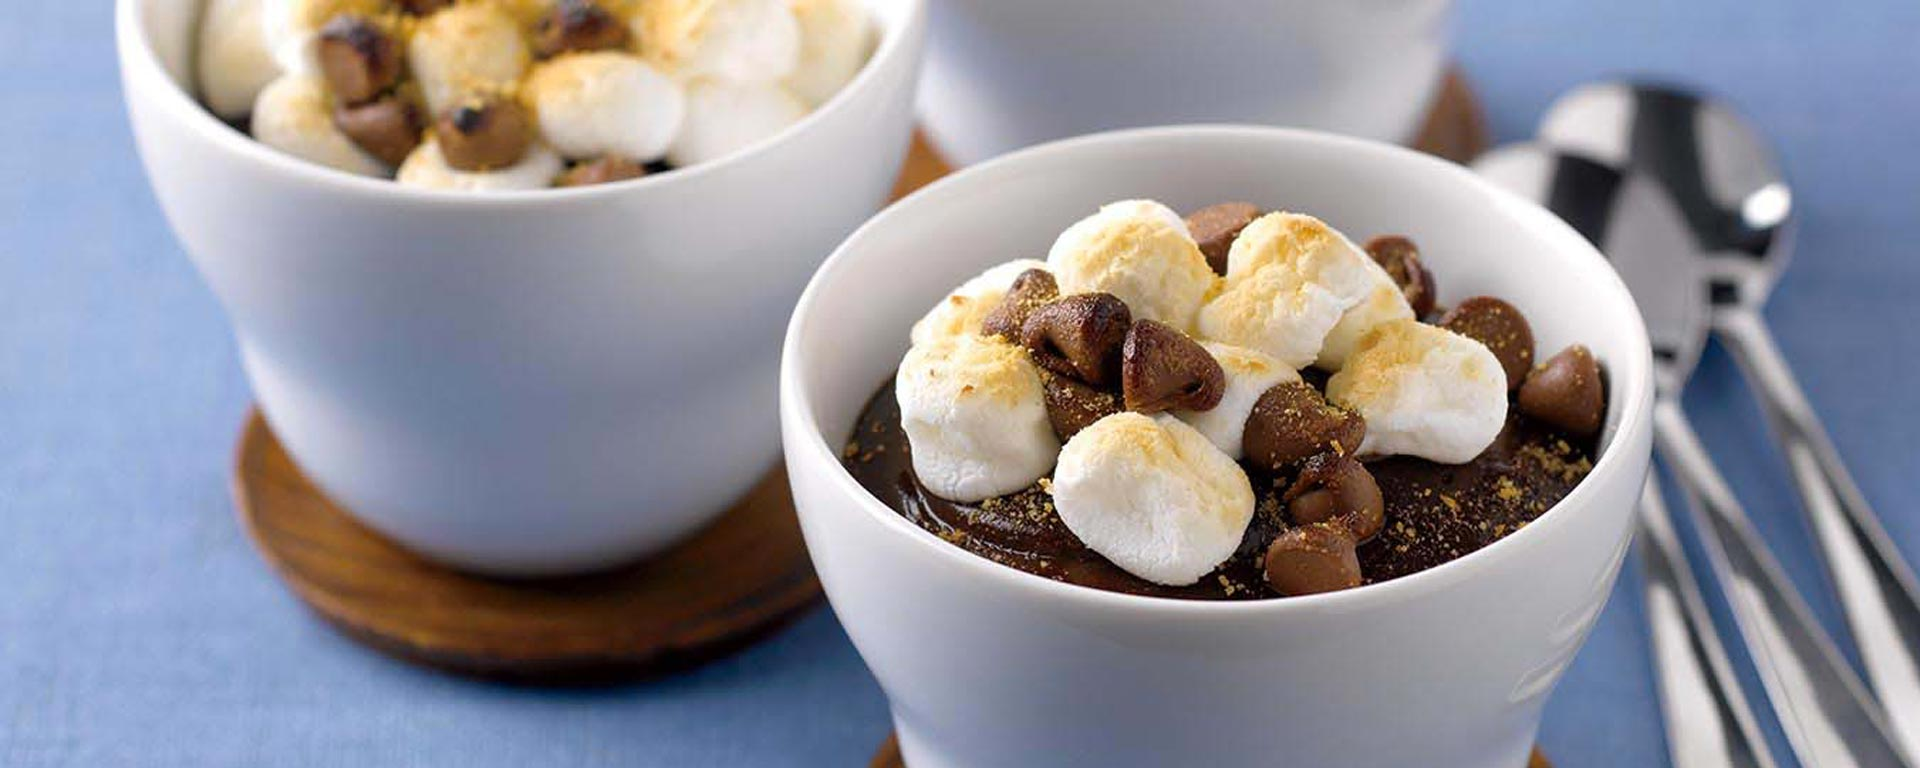 Photo for - S'mores Chocolate Pudding Cups